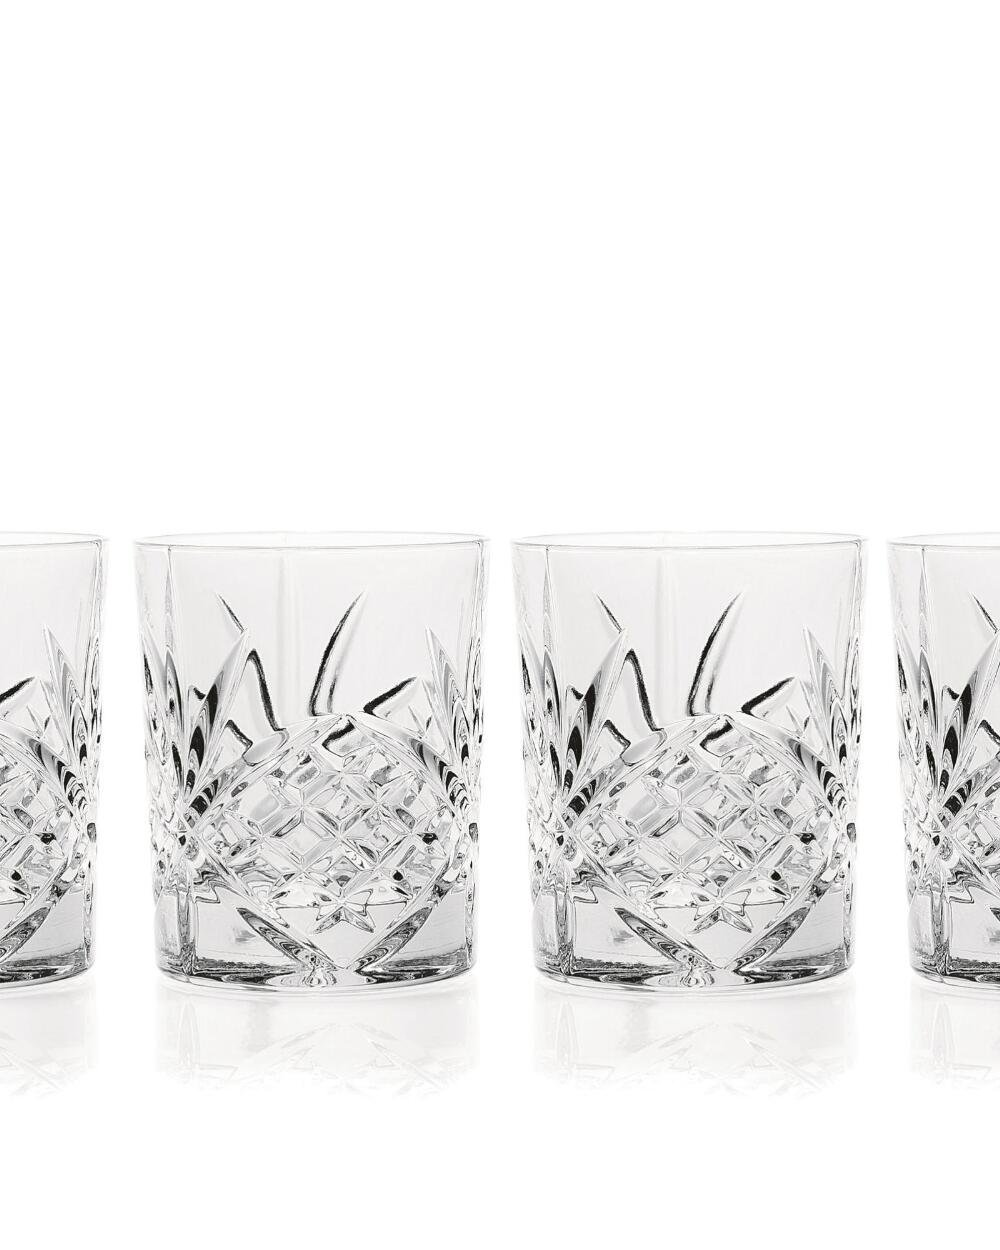 James Scott Double Old Fashioned Crystal Drinking Glasses Set, Irish Cut Design - Set of 4 - 8 Oz by James Scott (Image #5)